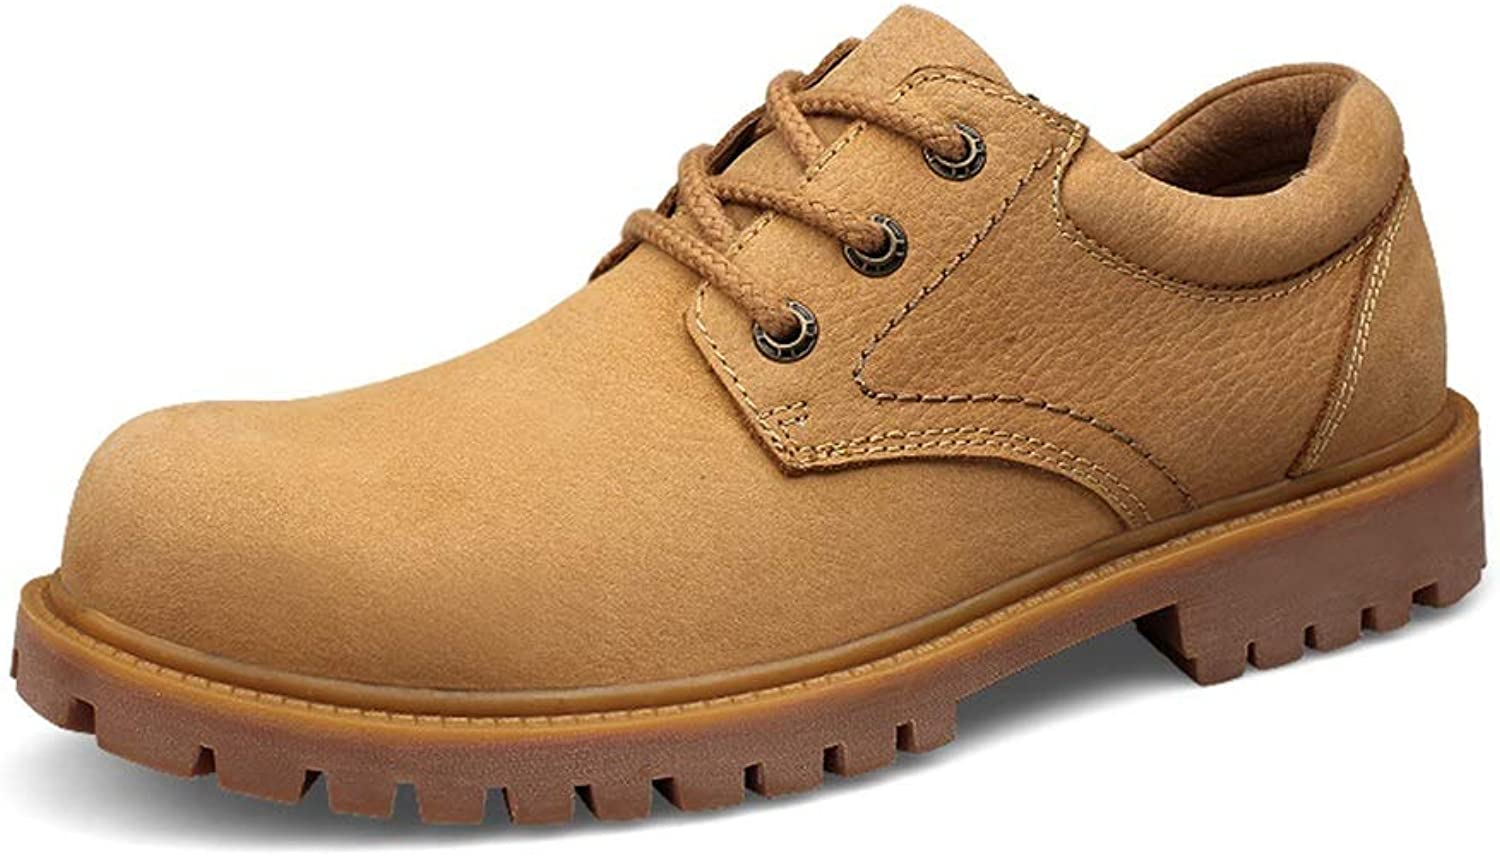 Men's Fashion Work Safety Boots for Men Antislip Low Top shoes Lace up Nubuck Leather Construction Riding Hiking shoes Work Boots,shoes